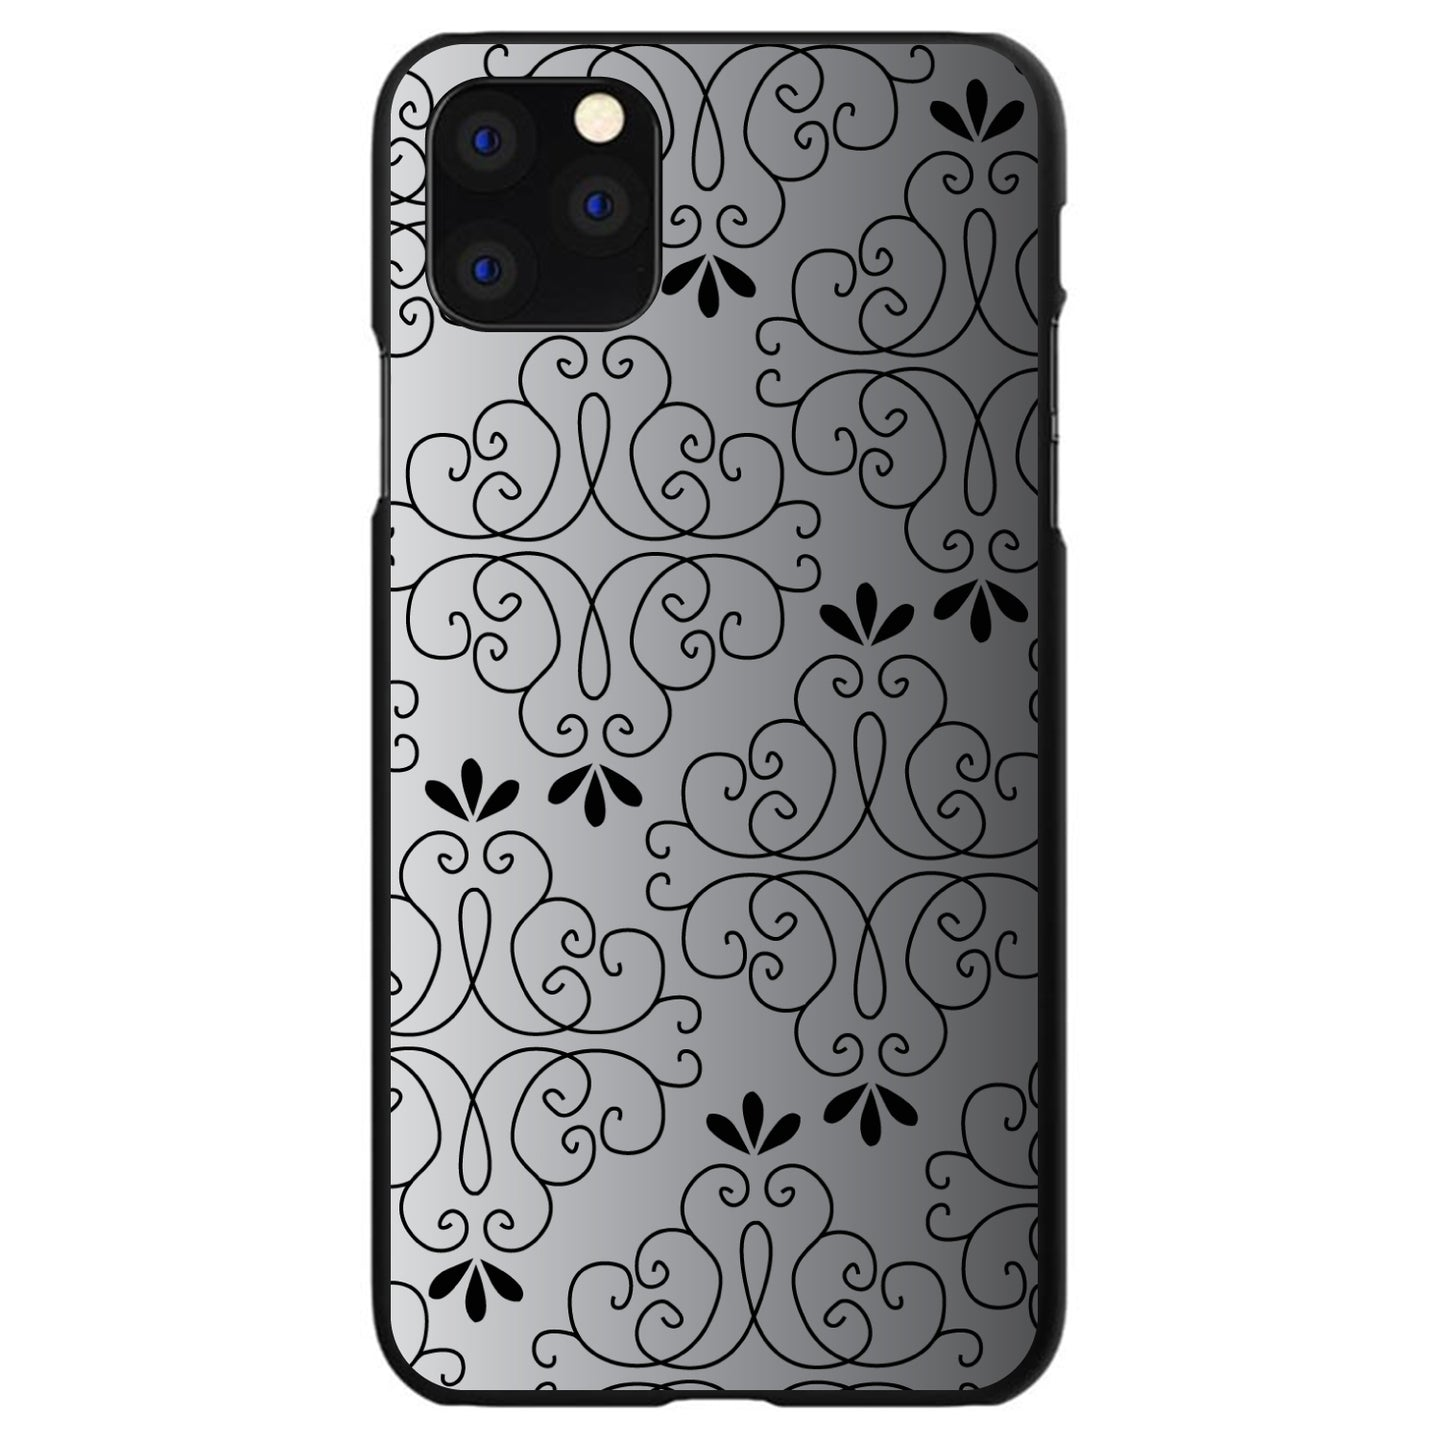 DistinctInk® Hard Plastic Snap-On Case for Apple iPhone - Black White Fade Black Floral Pattern